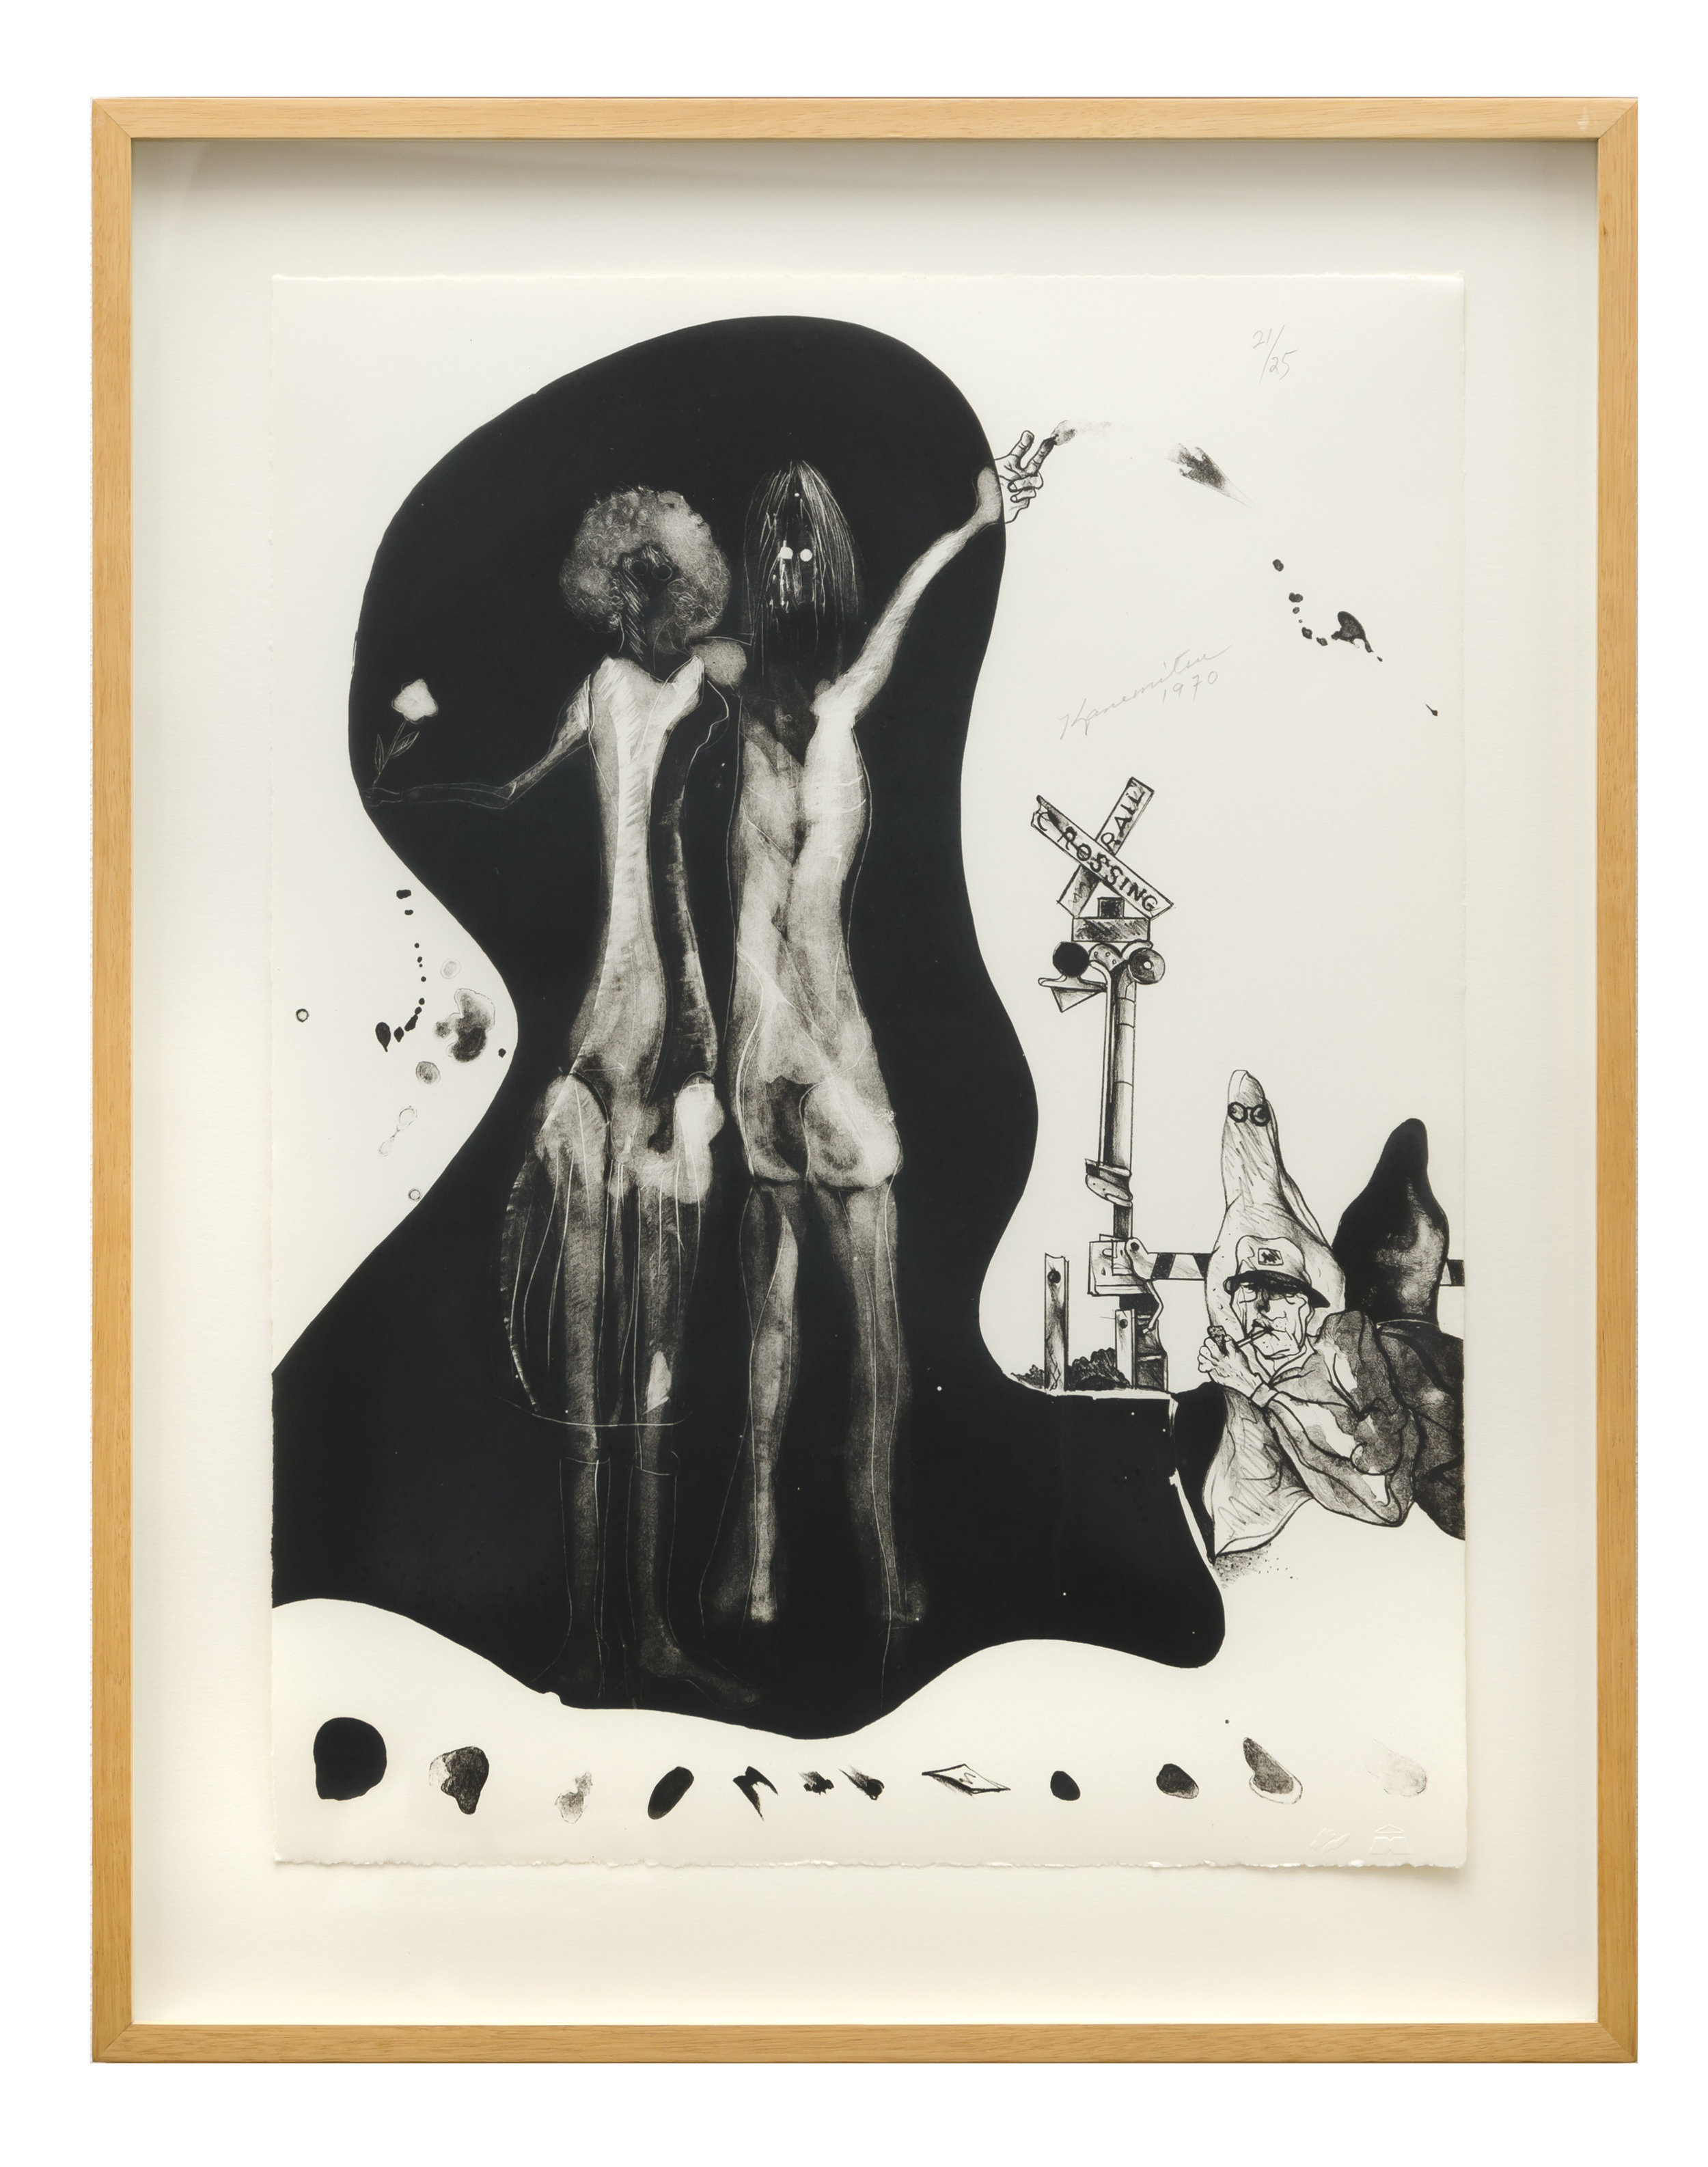 Hitchhiker Ghost   1970  lithograph  20 x 15 inches, 50.8 x 38.1 centimeters